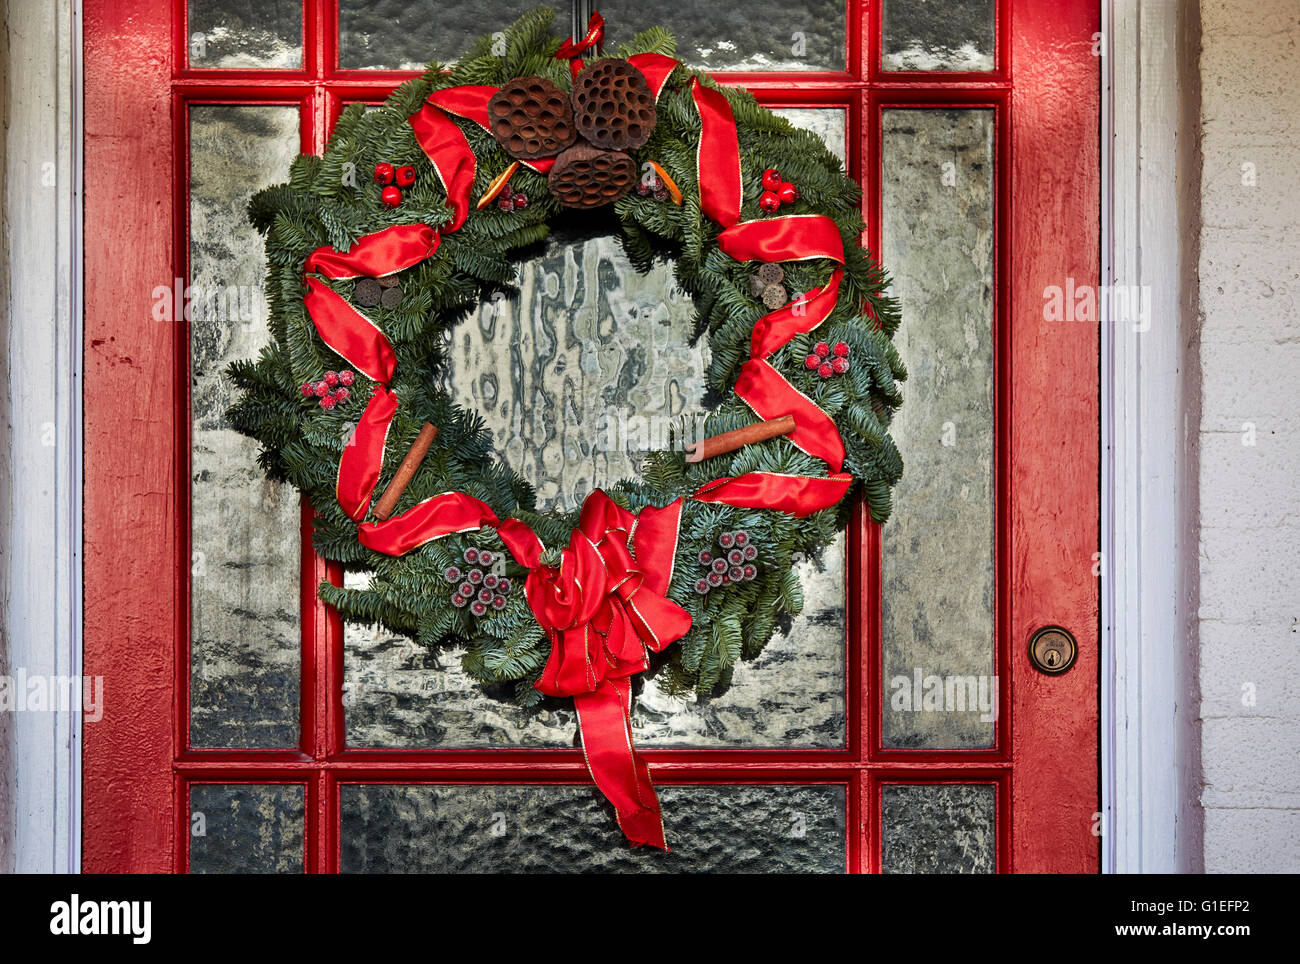 Christmas Garland On Door. Green Wreath With Red Ribbon Hanging On Red And Glass  Door.